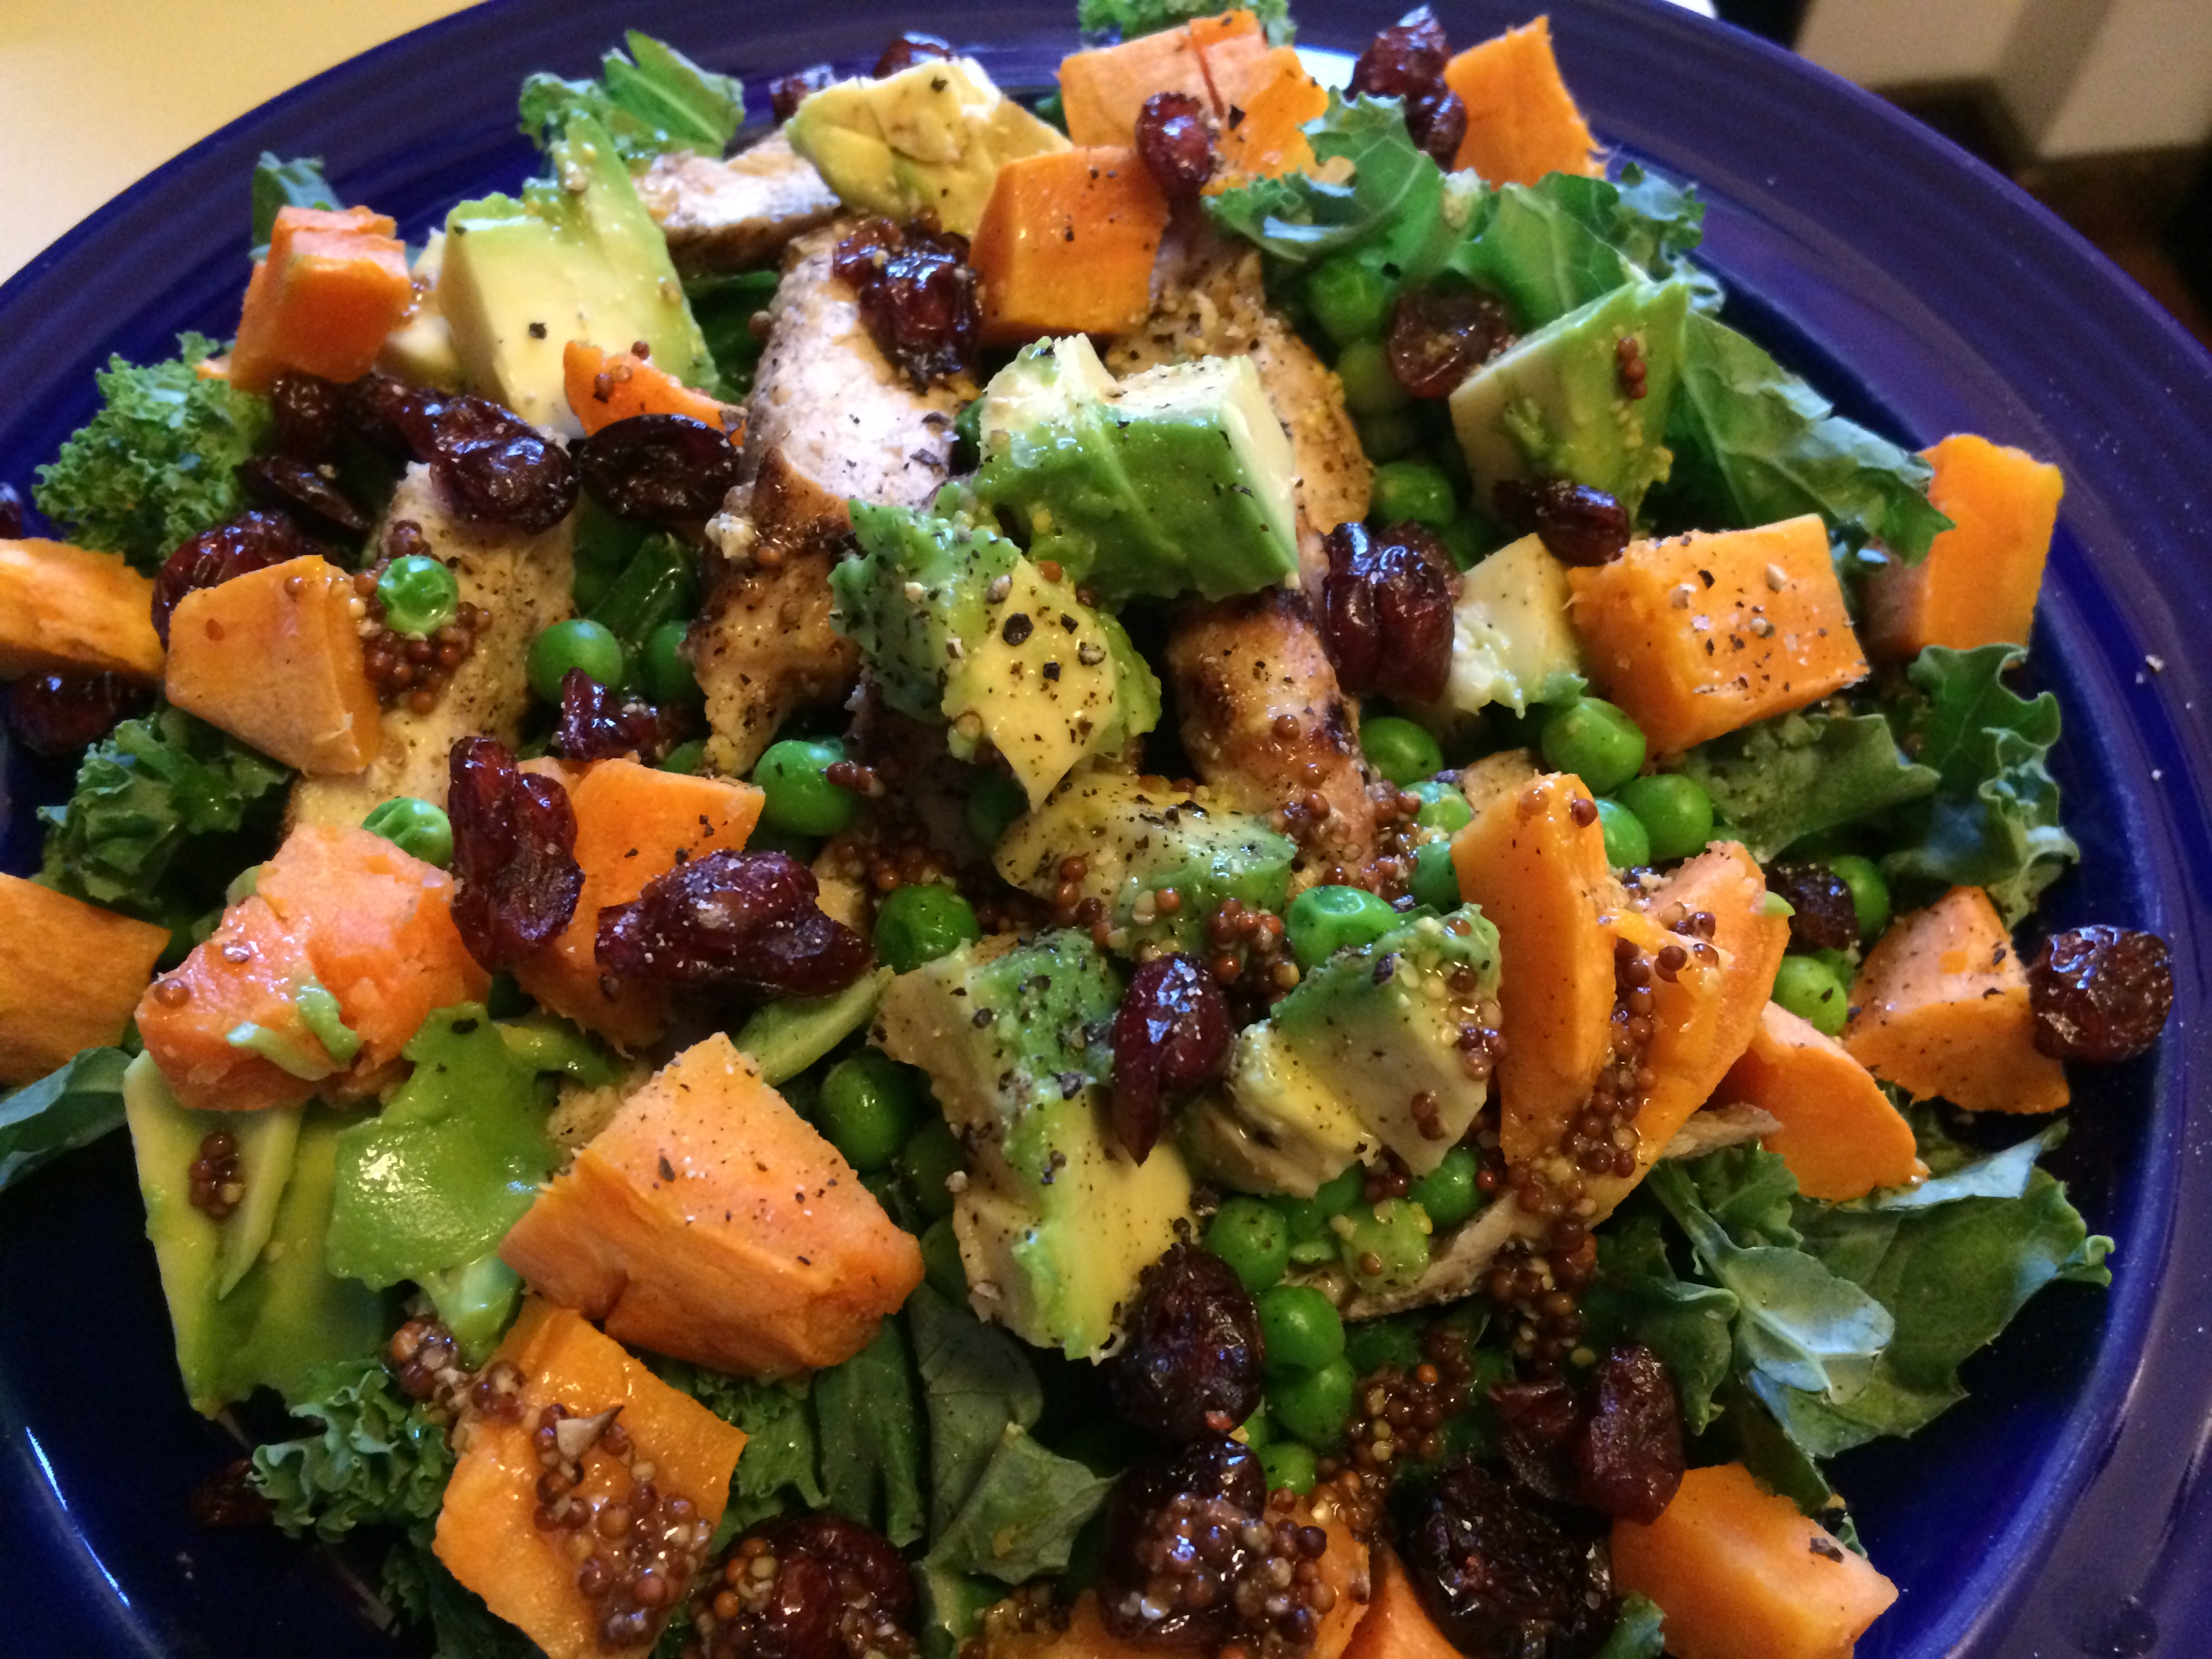 Kale Salad With Chicken And Sweet Potato Recipes — Dishmaps